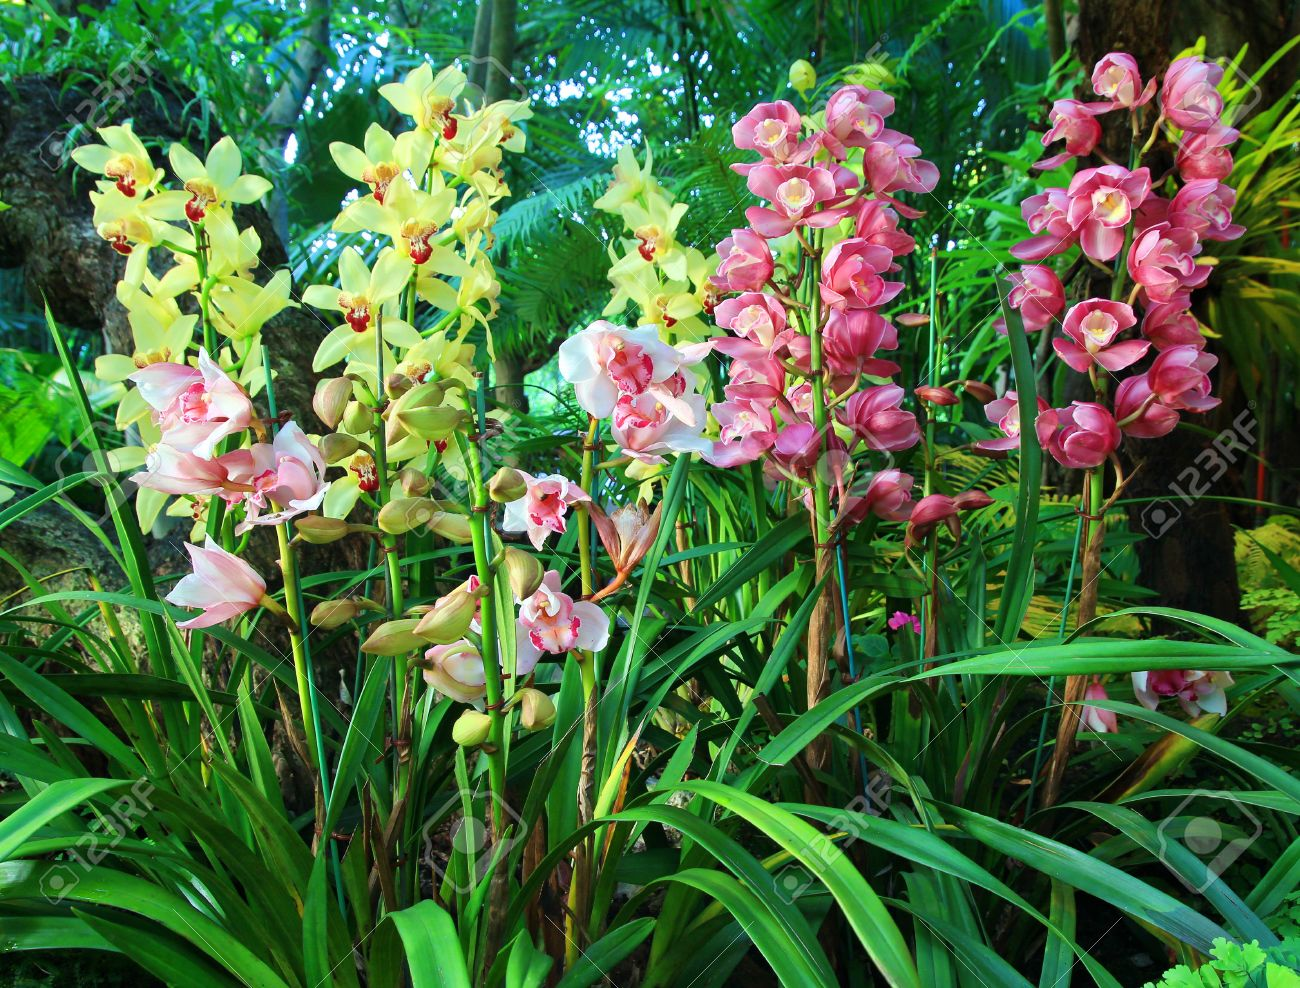 Cymbidium Orchid Colors Colorful Cymbidium Orchids in